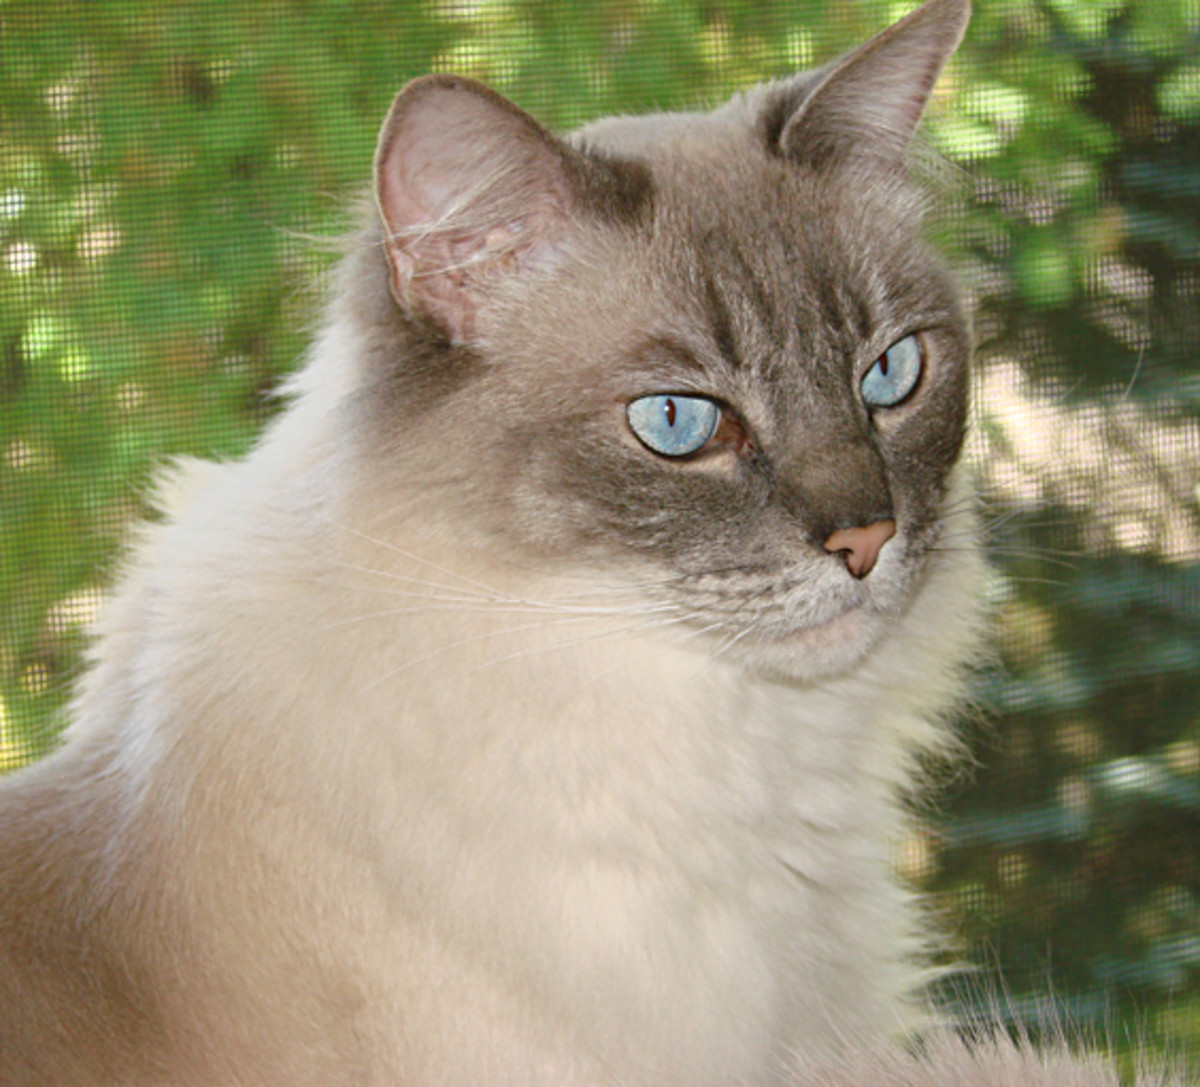 Bennie is one of my ragdoll cats.